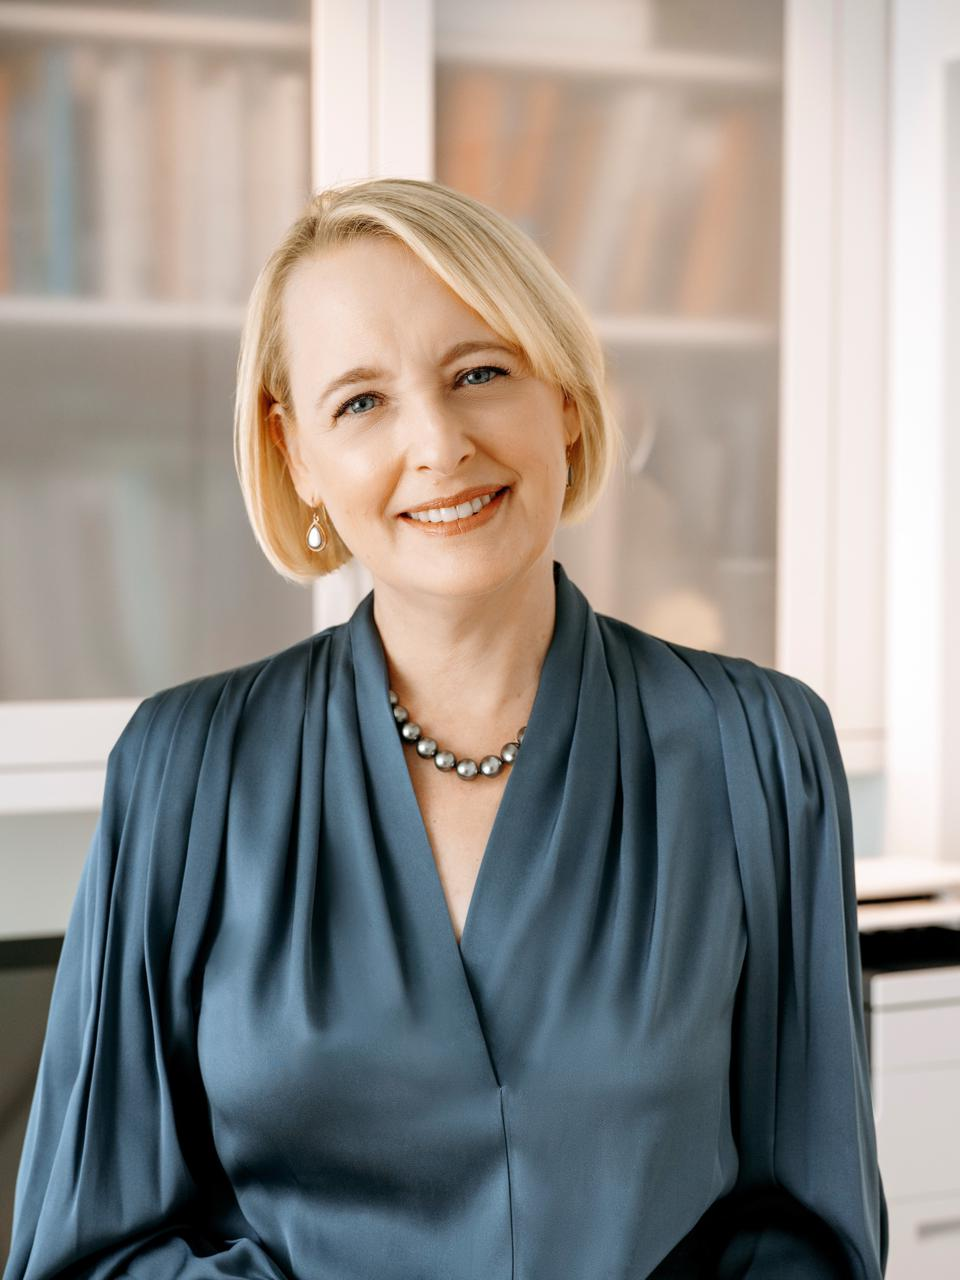 Julie Sweet, CEO of Accenture prides on helping both companies lead with gender equality whilst striving to deliver Shiseido's vision.